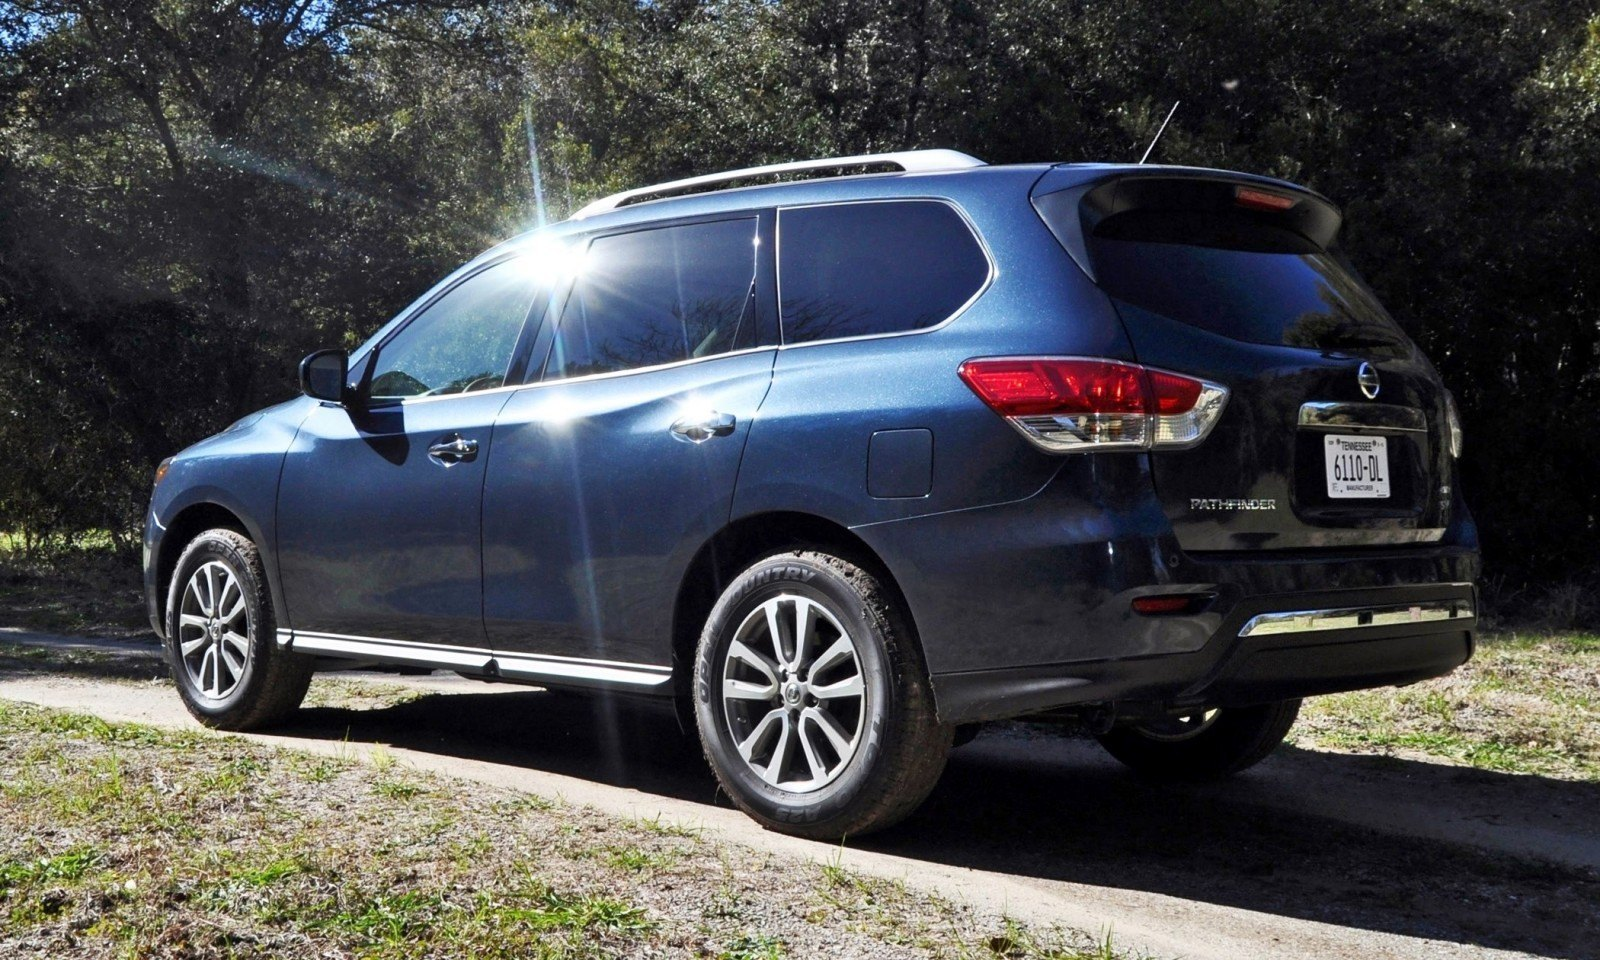 Road Test Review - 2015 Nissan Pathfinder SV 4WD 33